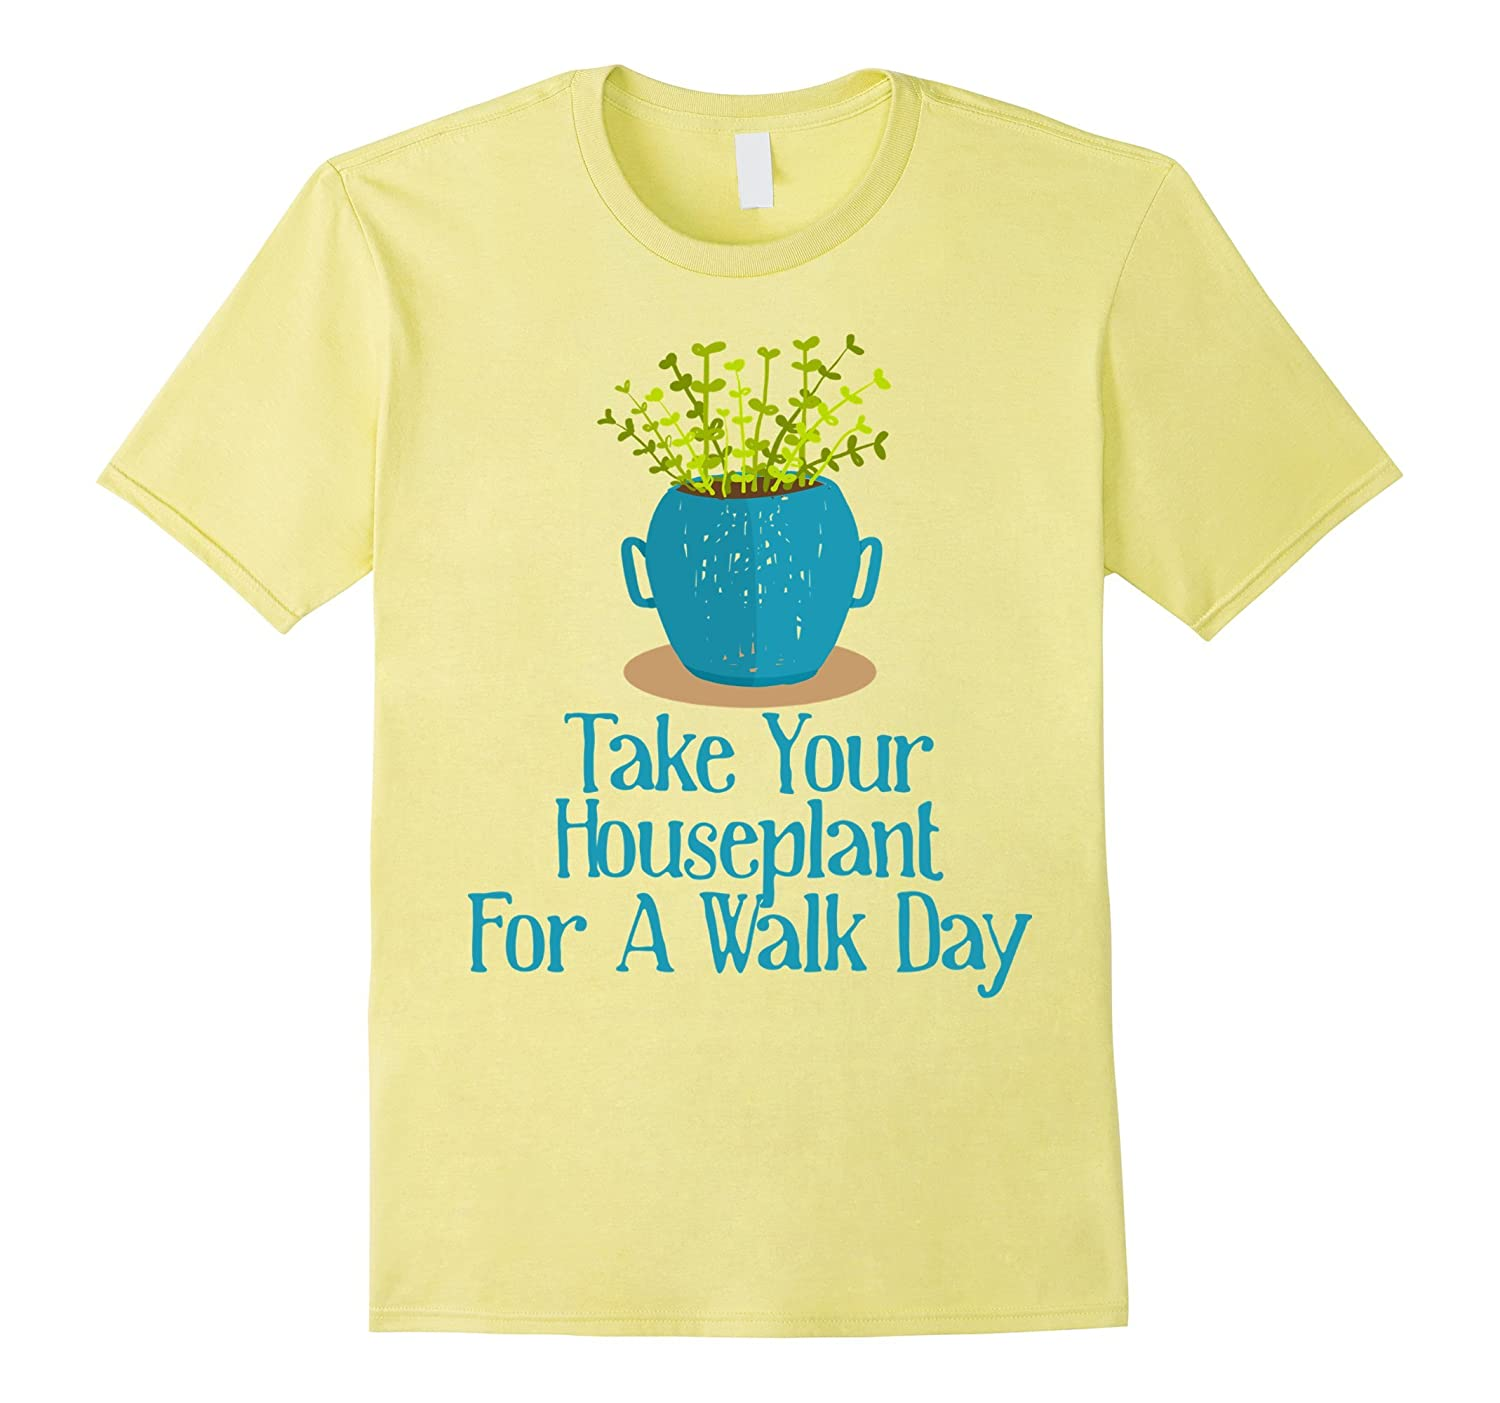 27th July - Take Your Houseplant For A Walk Day Shirt-Vaci